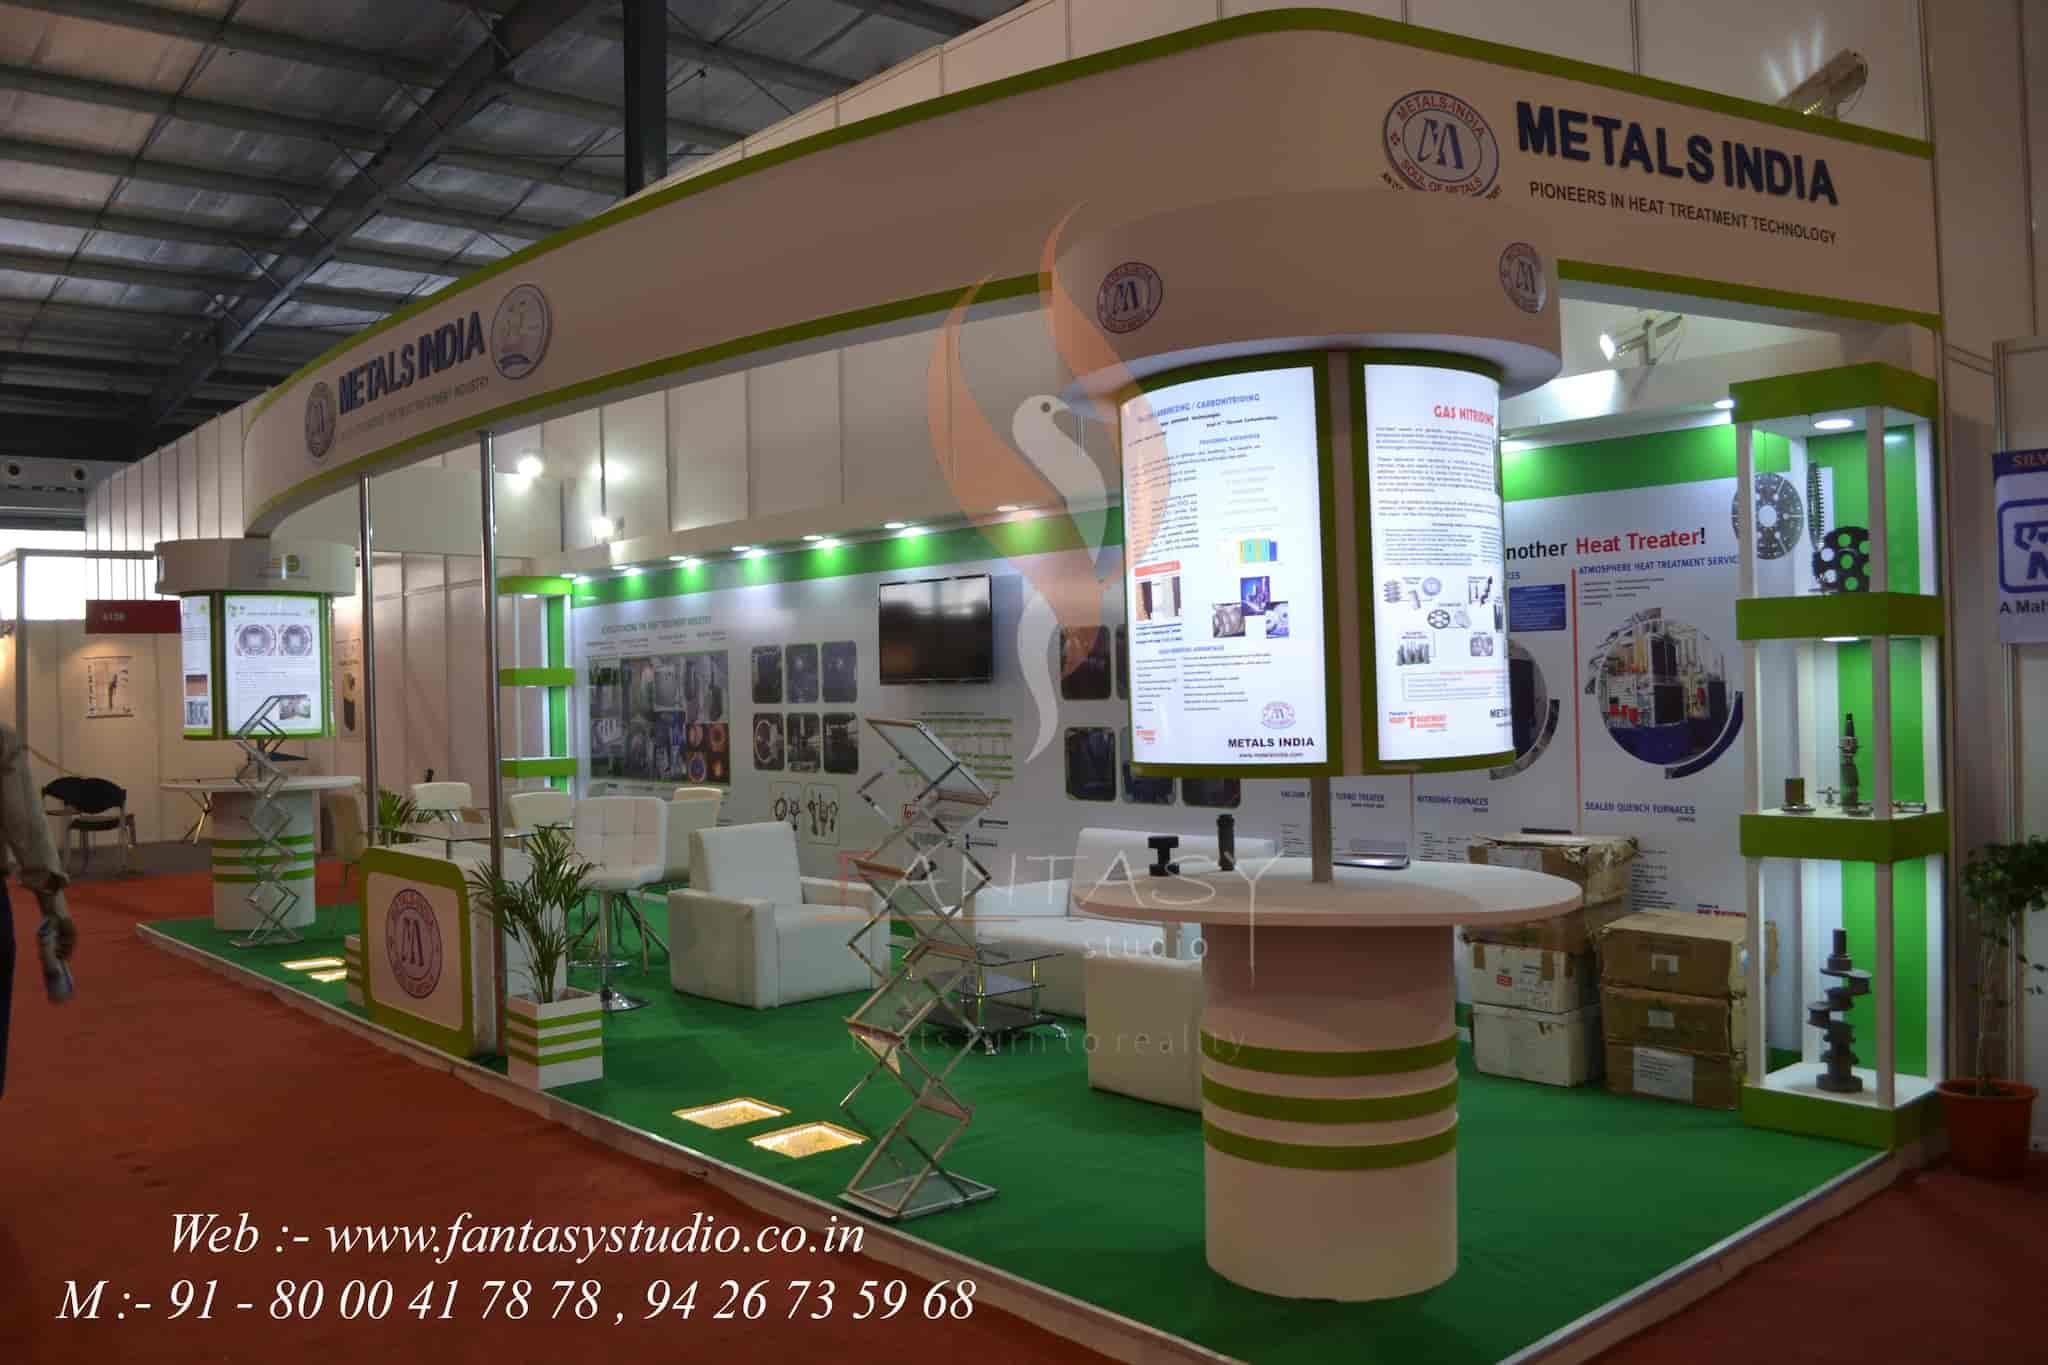 Exhibition Stall Design Ahmedabad : Best exhibition stall designer in ahmedabad by dsigner studio